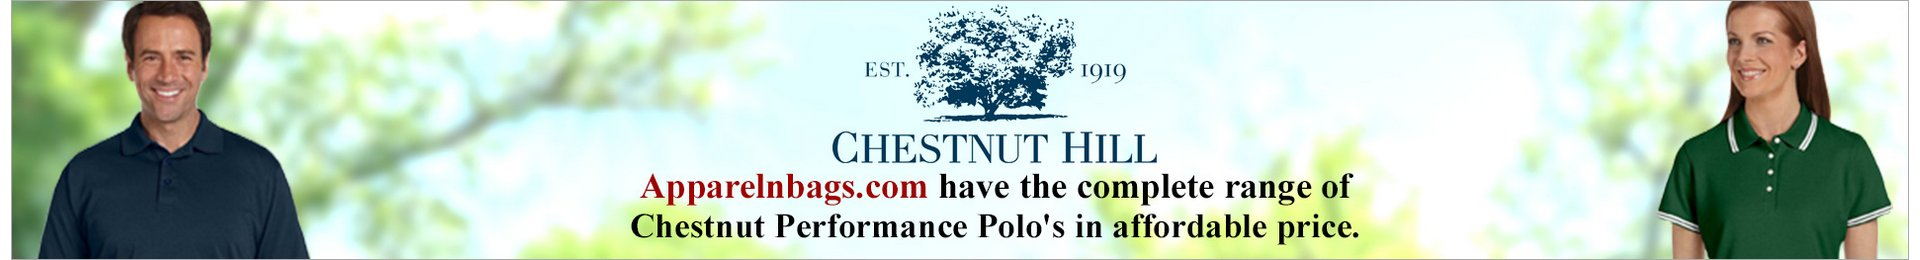 Chestnut Hill Polo And Sports Shirts